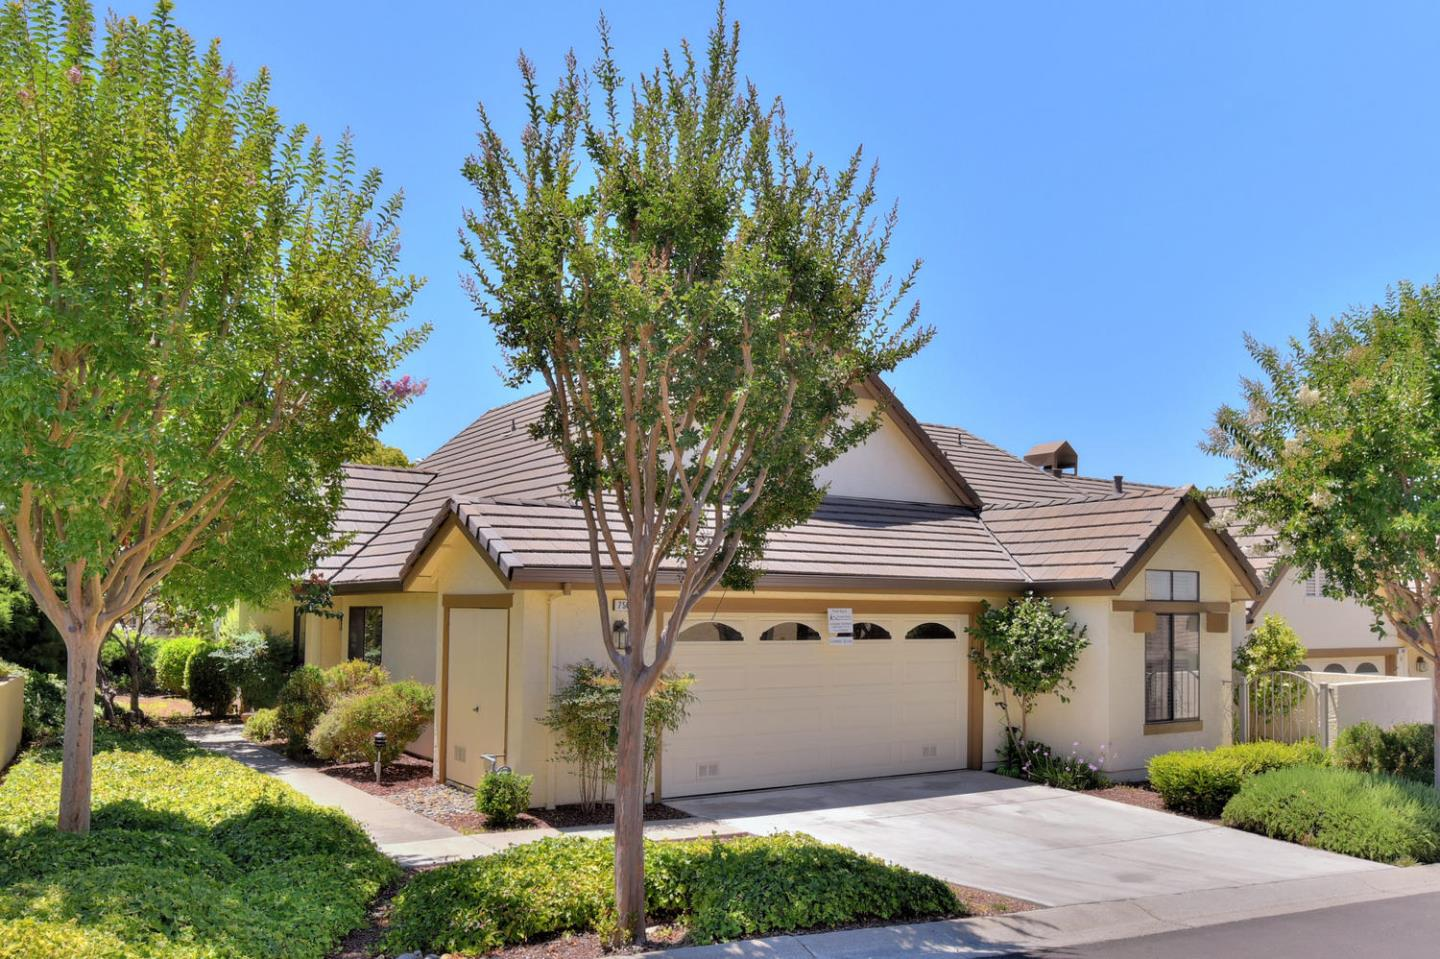 7503 Deveron CT, Evergreen in Santa Clara County, CA 95135 Home for Sale